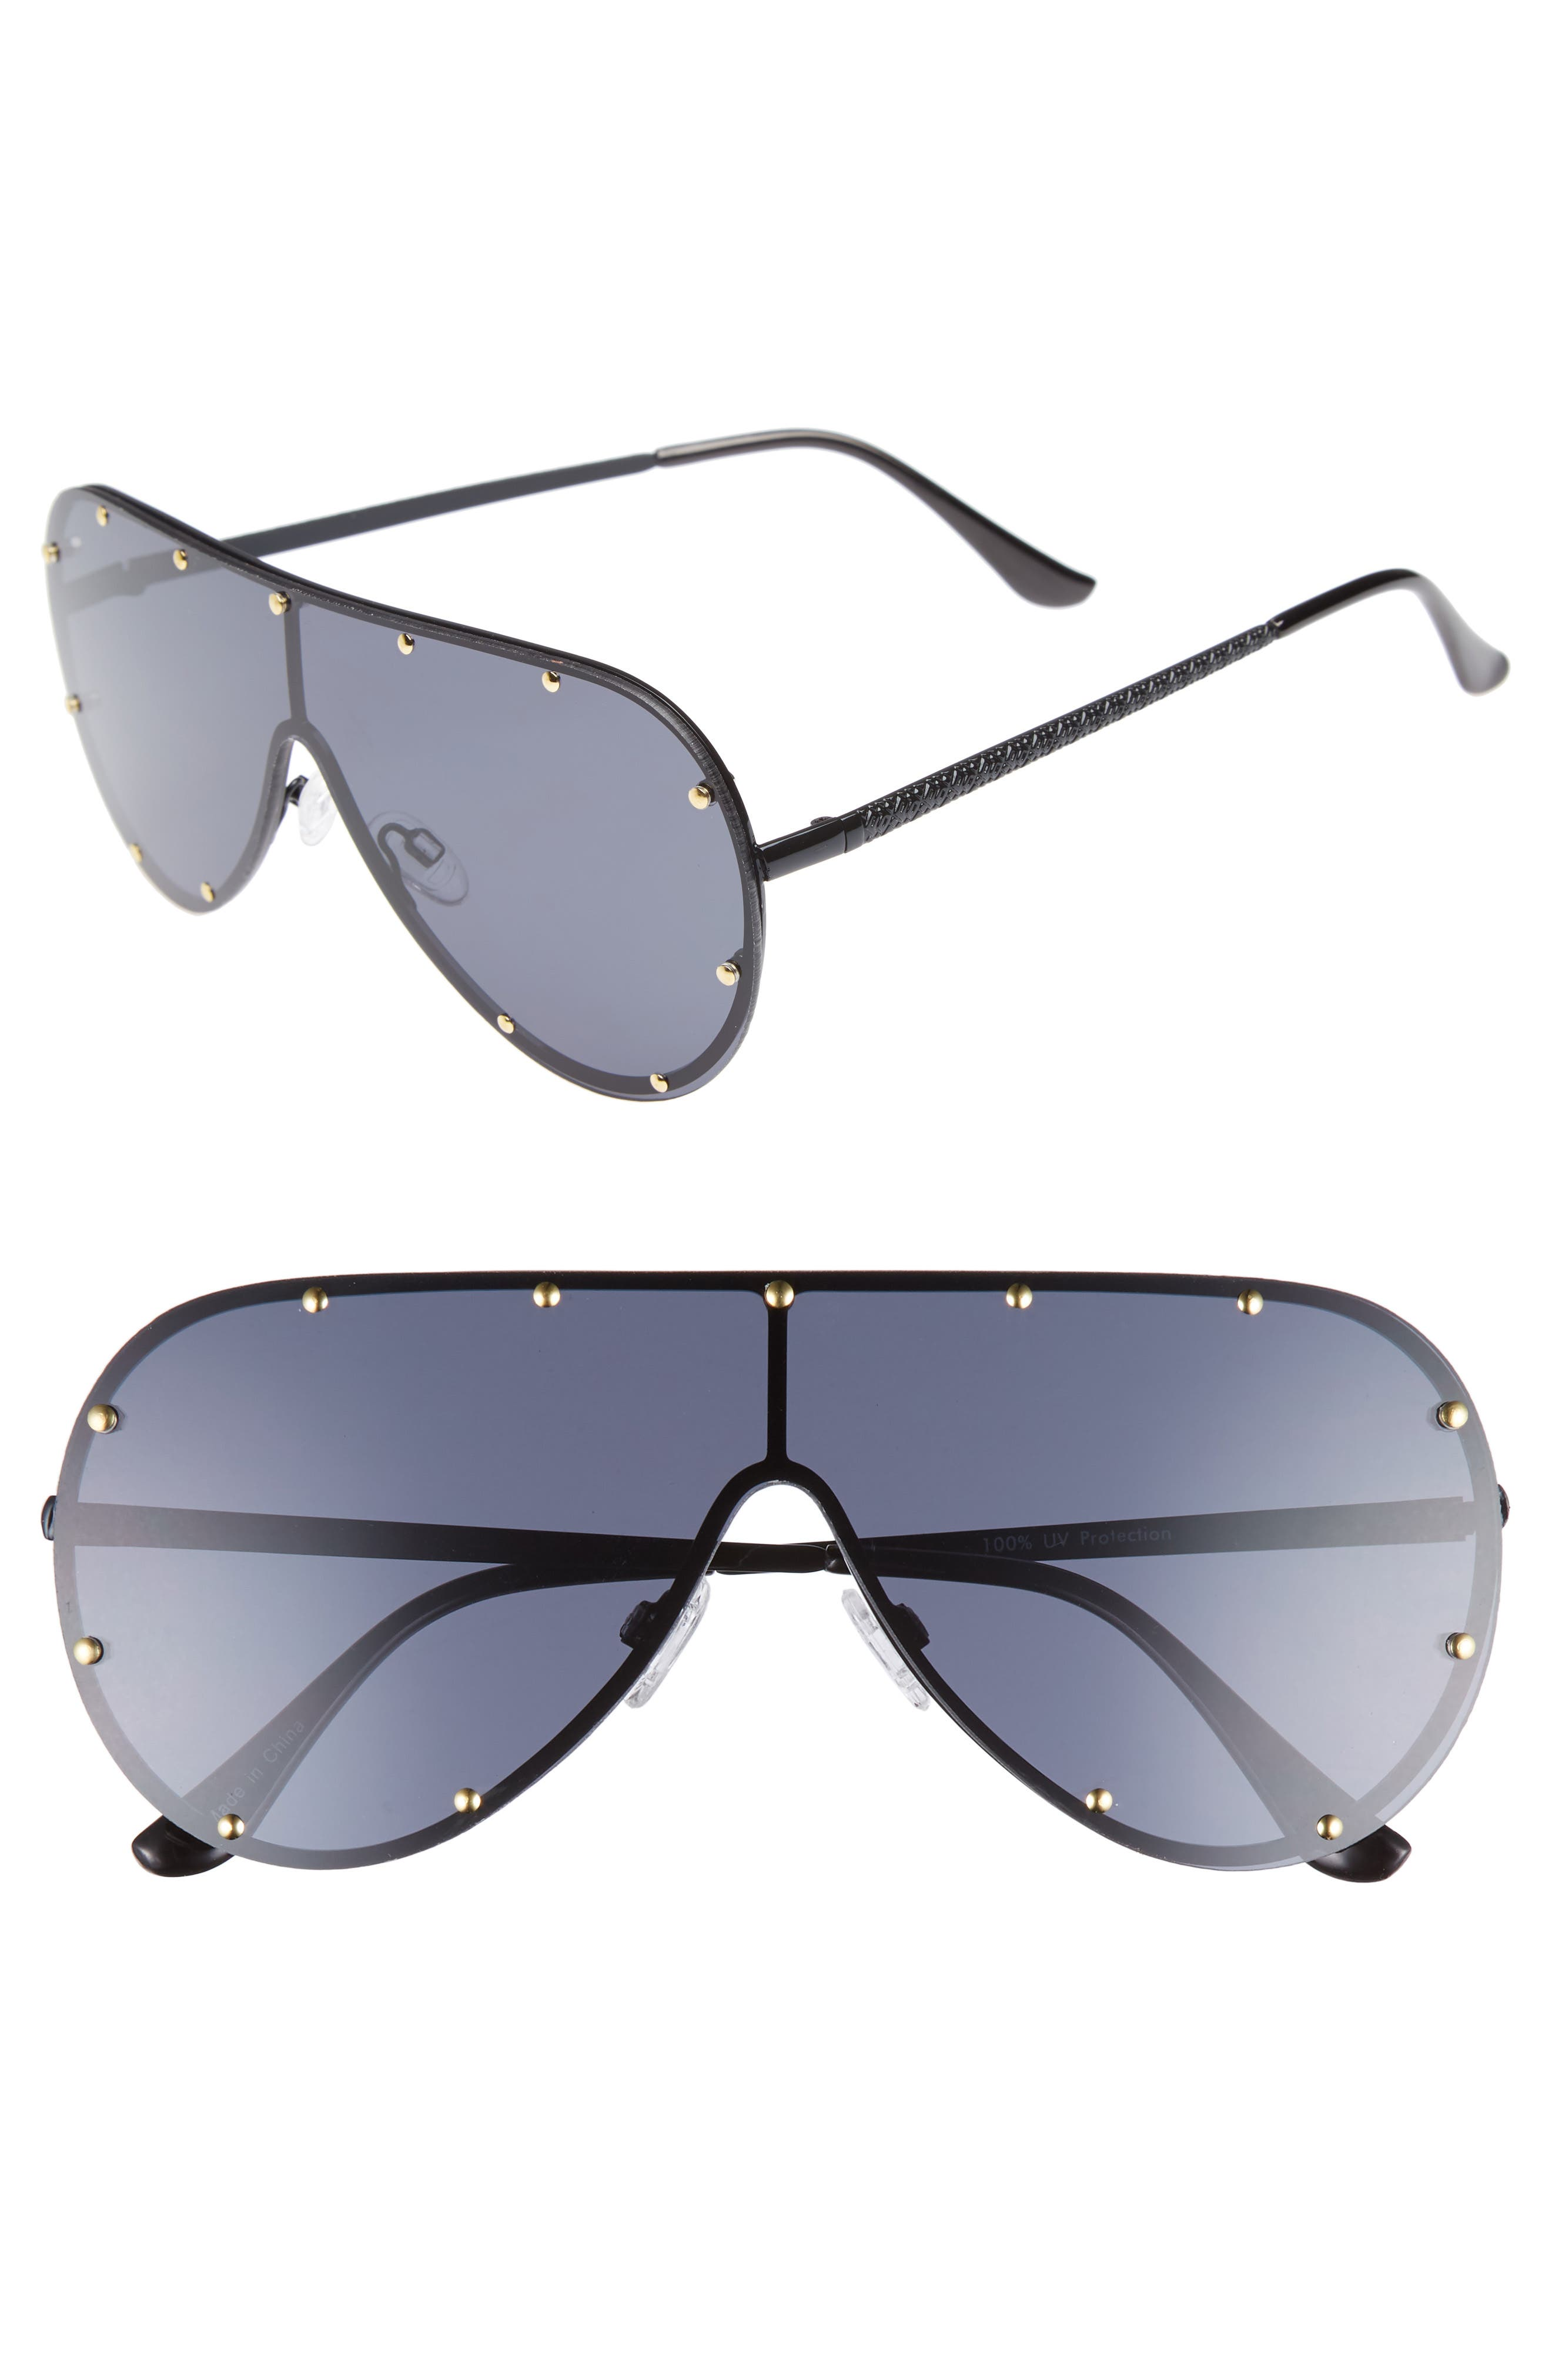 65mm Studded Shield Sunglasses,                         Main,                         color, Black